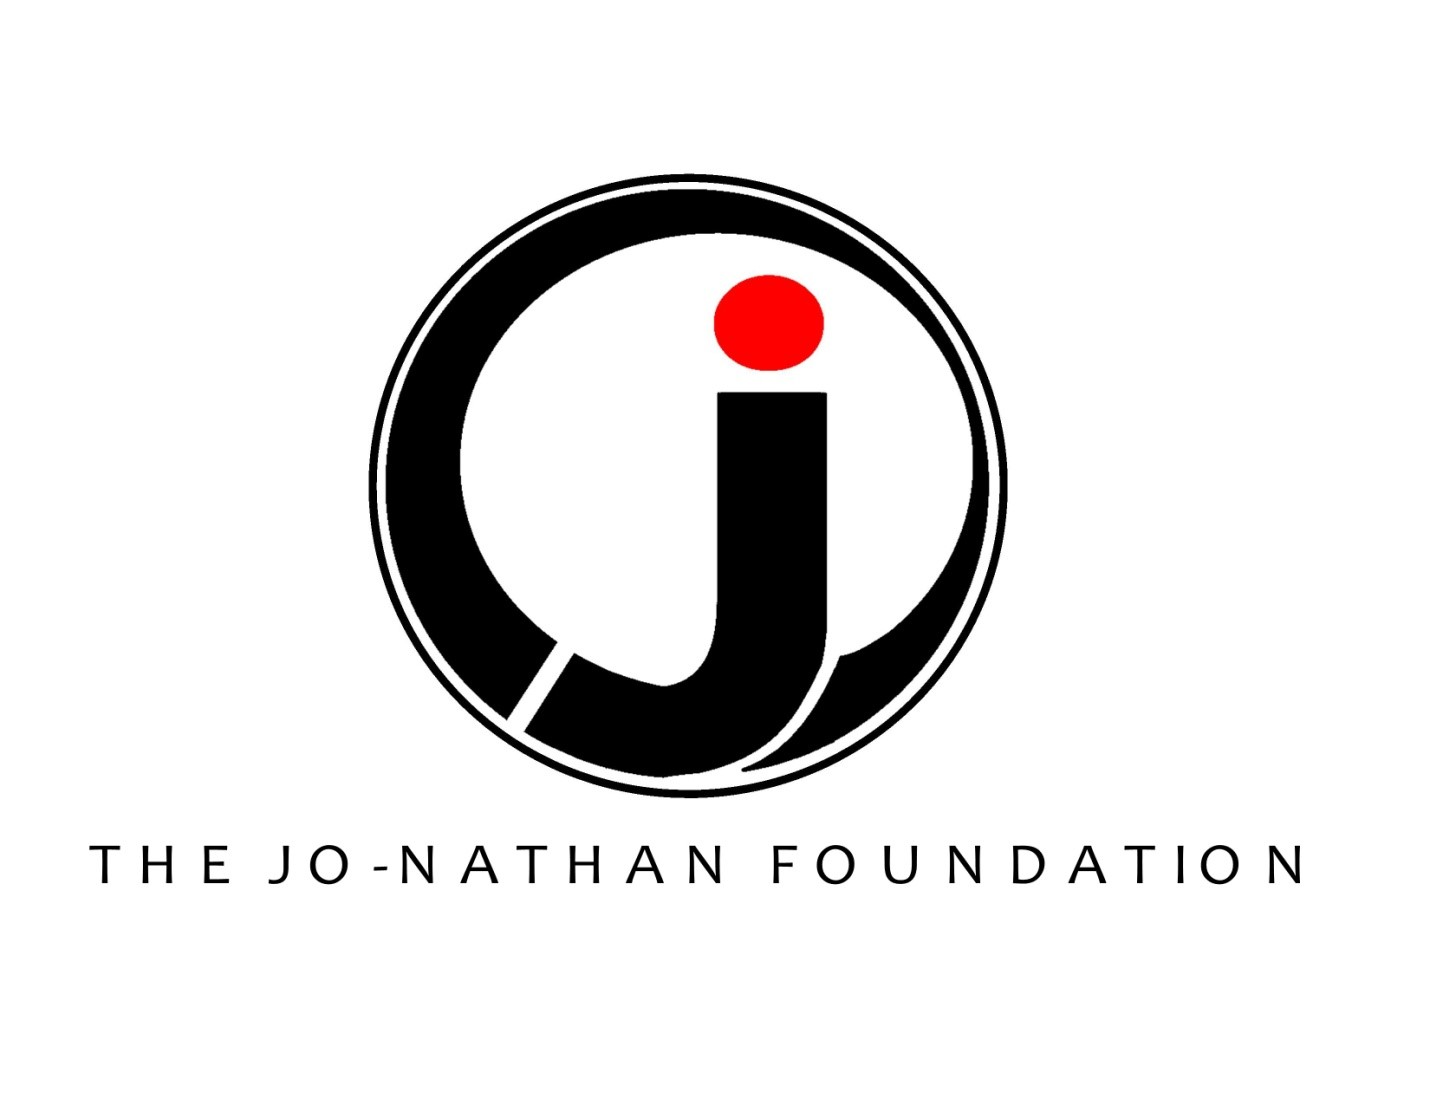 The Jo-Nathan Foundation